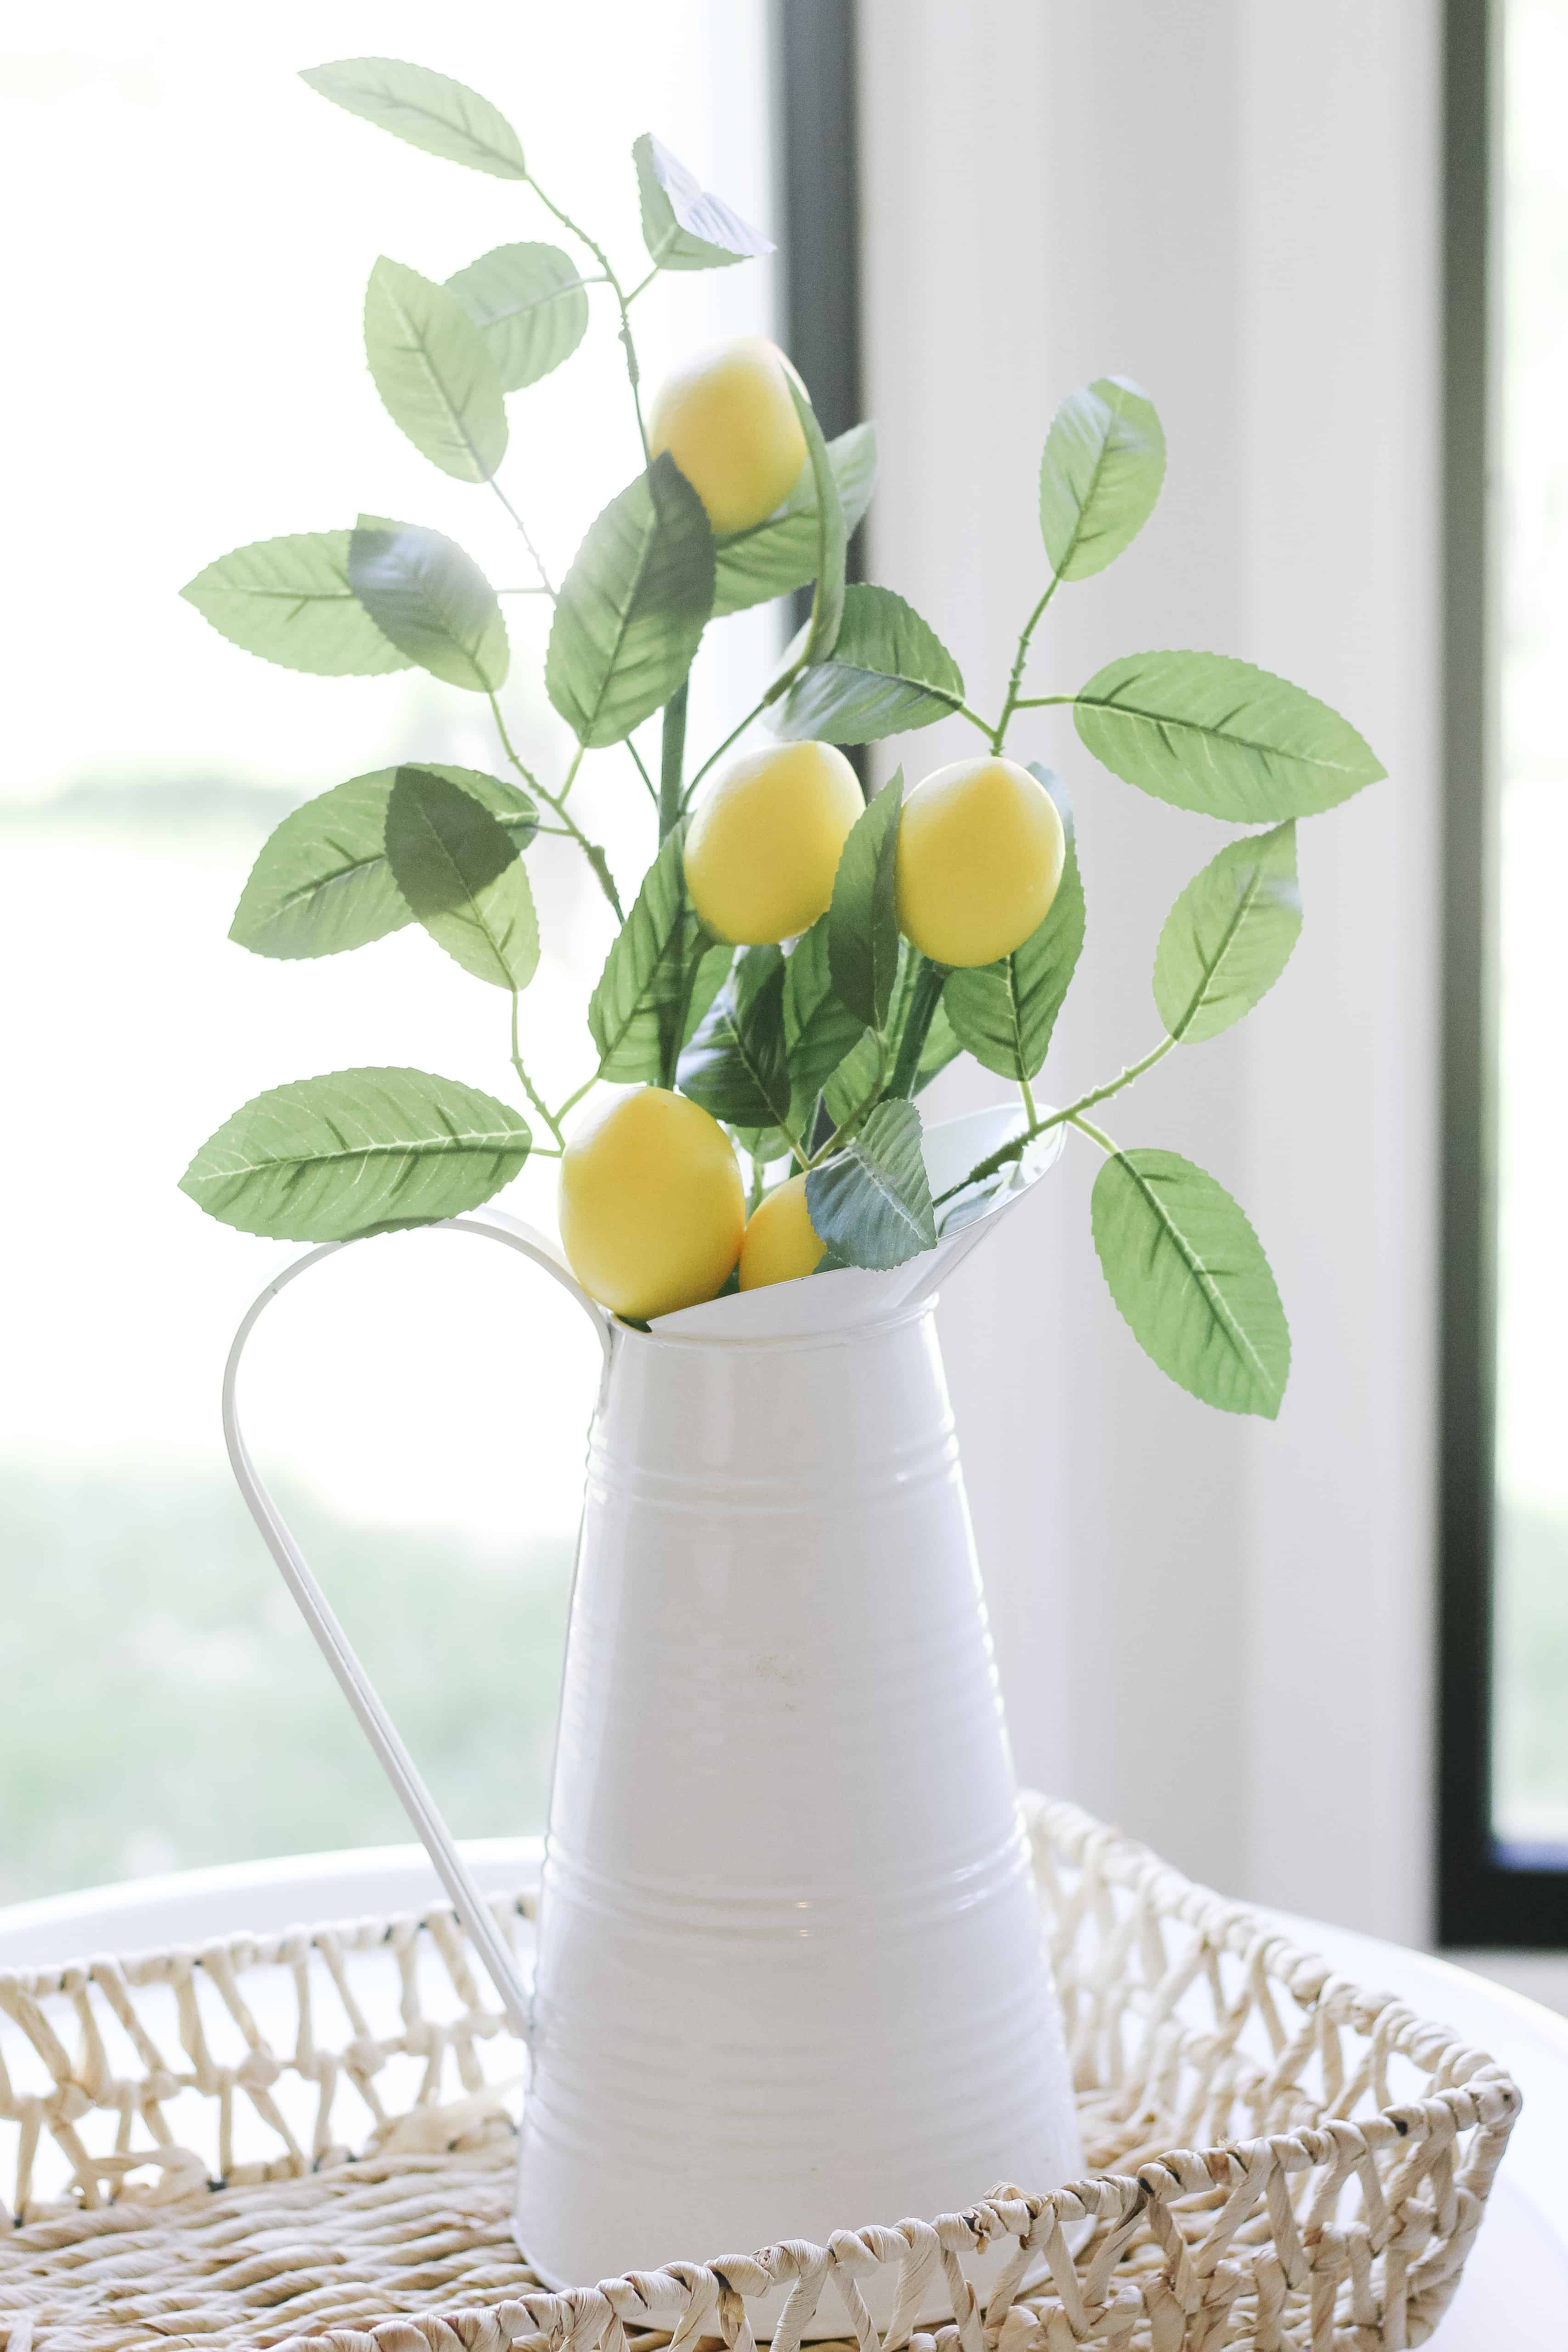 white metal pitcher with lemons and greenery inside